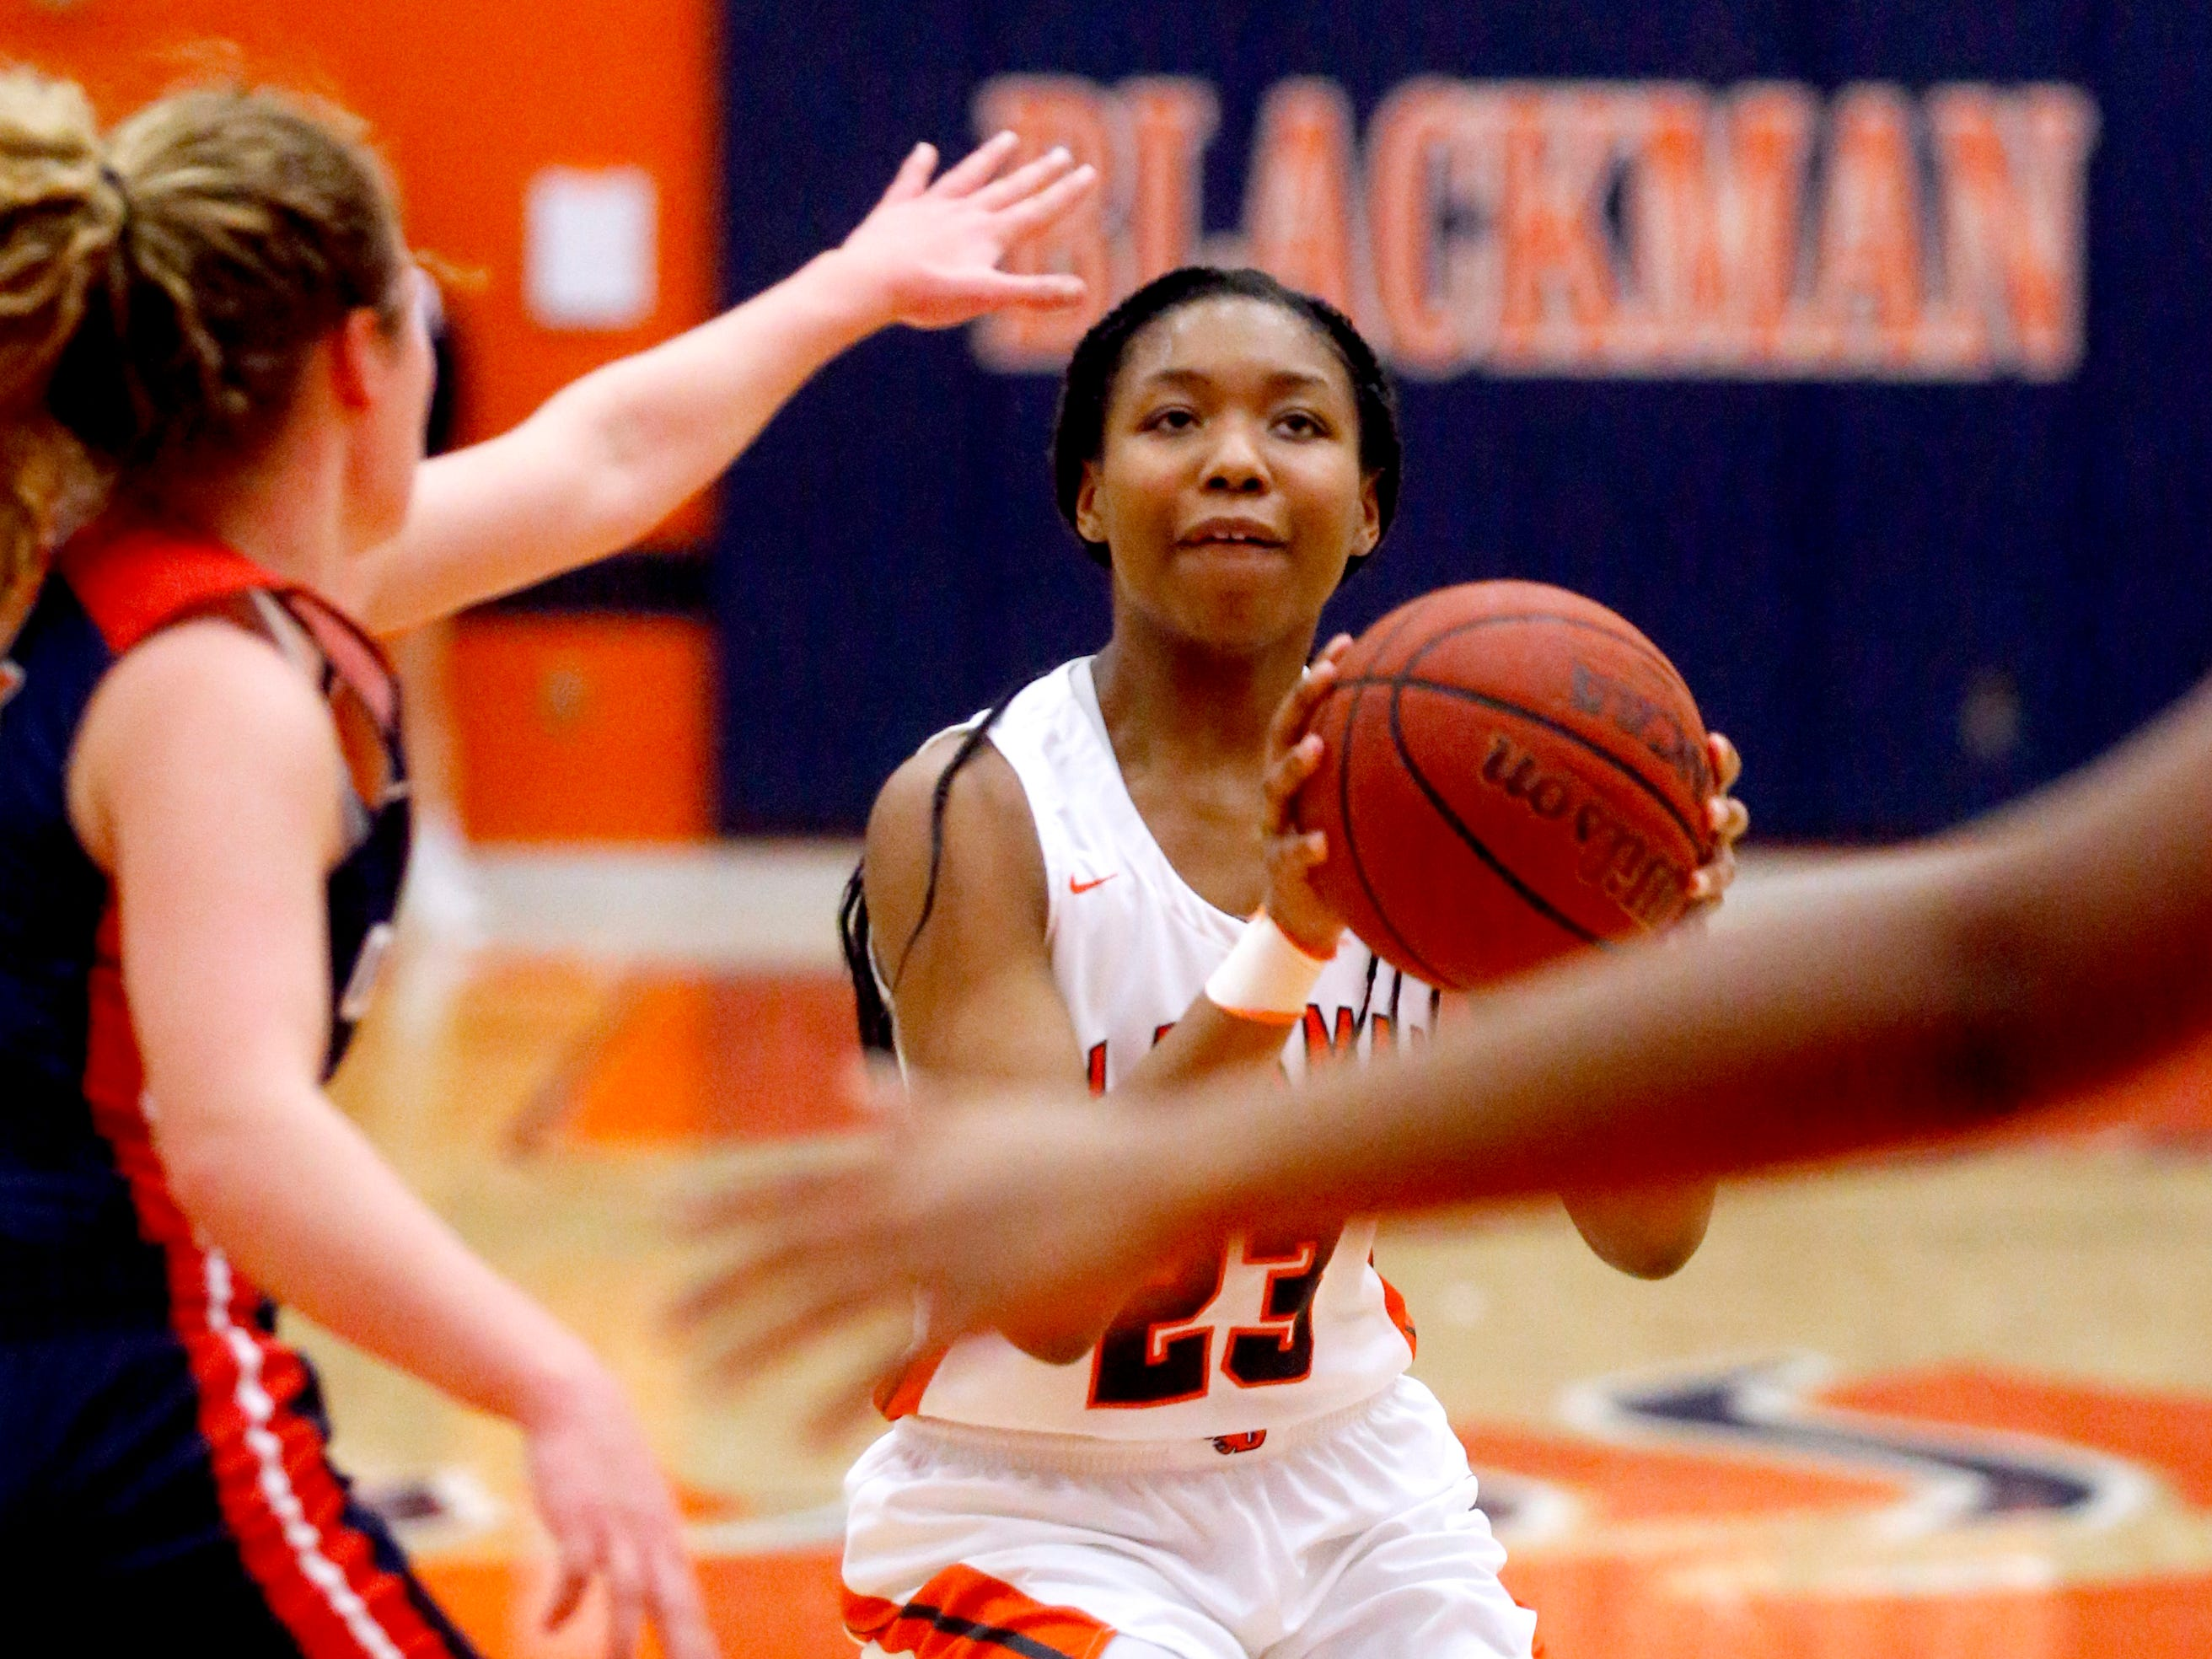 Blackman's Iyana Moore (23) shoots the ball during the game against Blackman on Friday, Feb. 8, 2019.